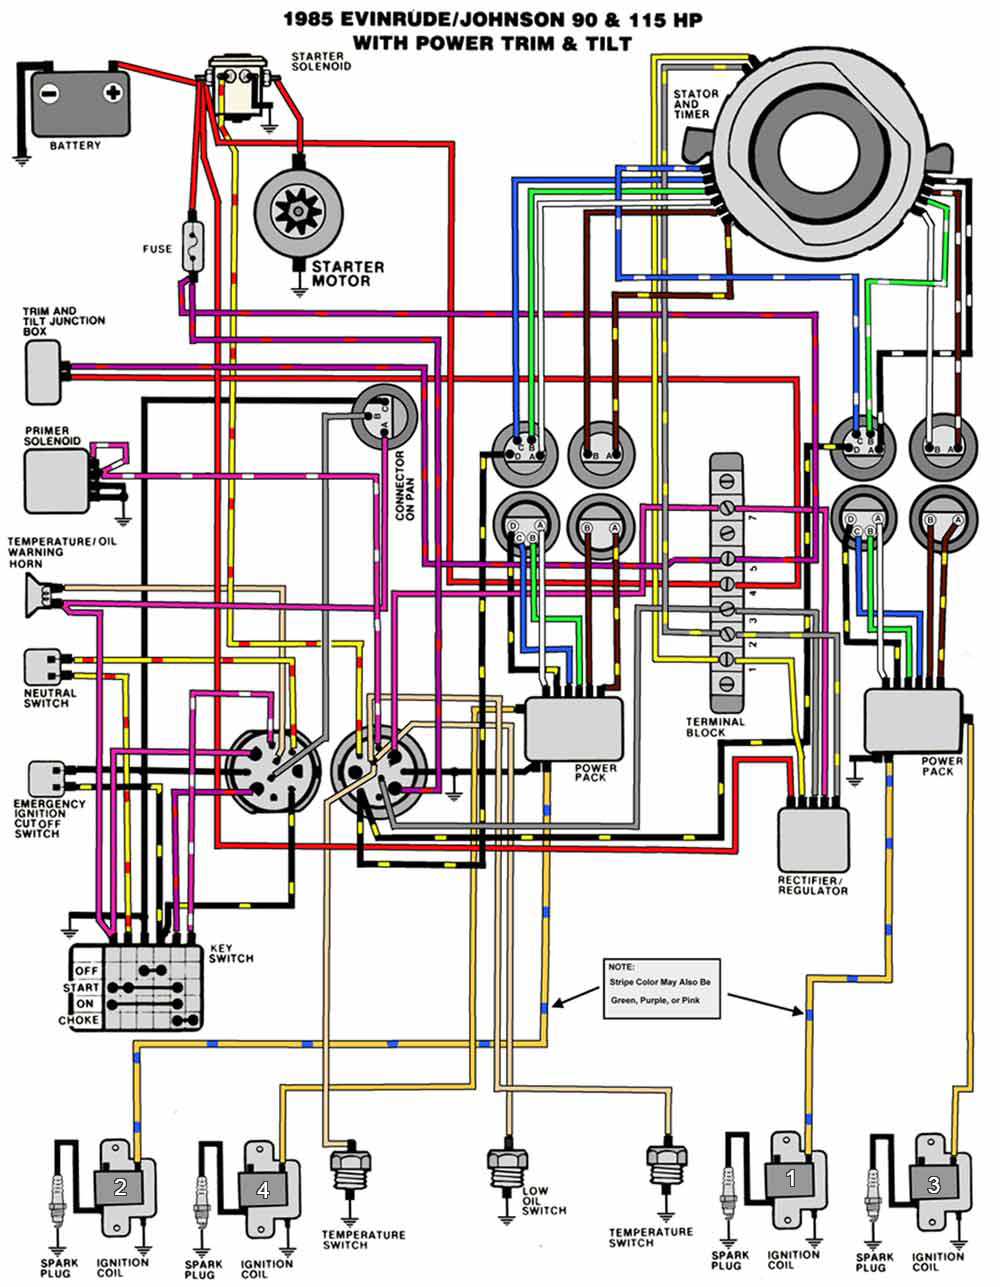 60 Hp Evinrude Wiring Diagram | Wiring Diagram  Hp Evinrude Wiring Diagram on